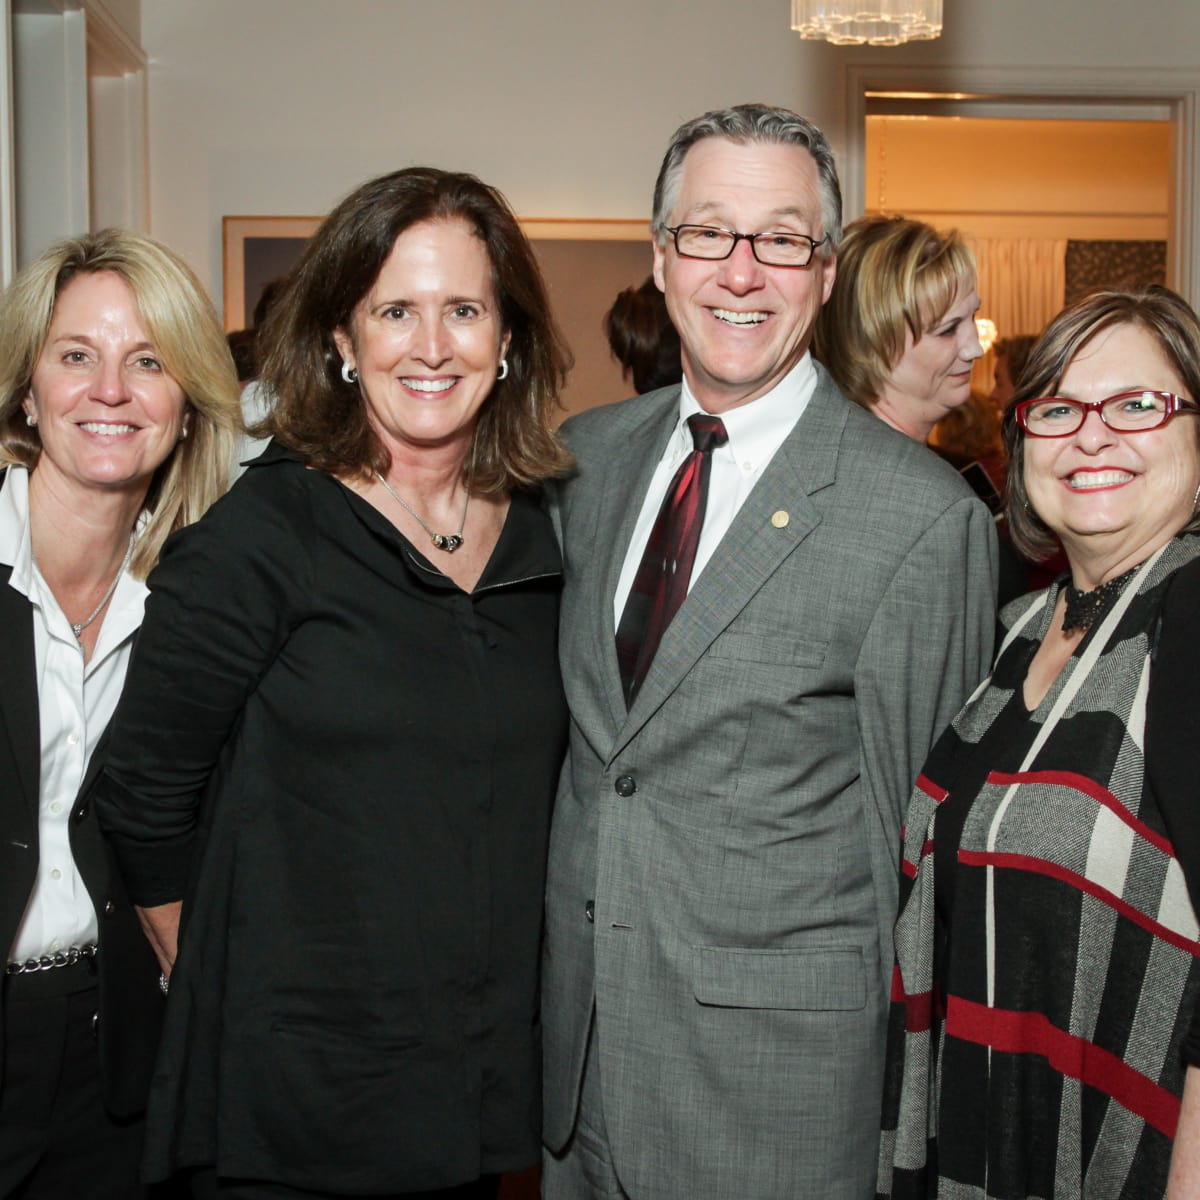 News, Legacy Holiday Schmooze, Dec. 2015, Lisa Bordelon, Cathy Porter, Steve Costello, Debbie Costello